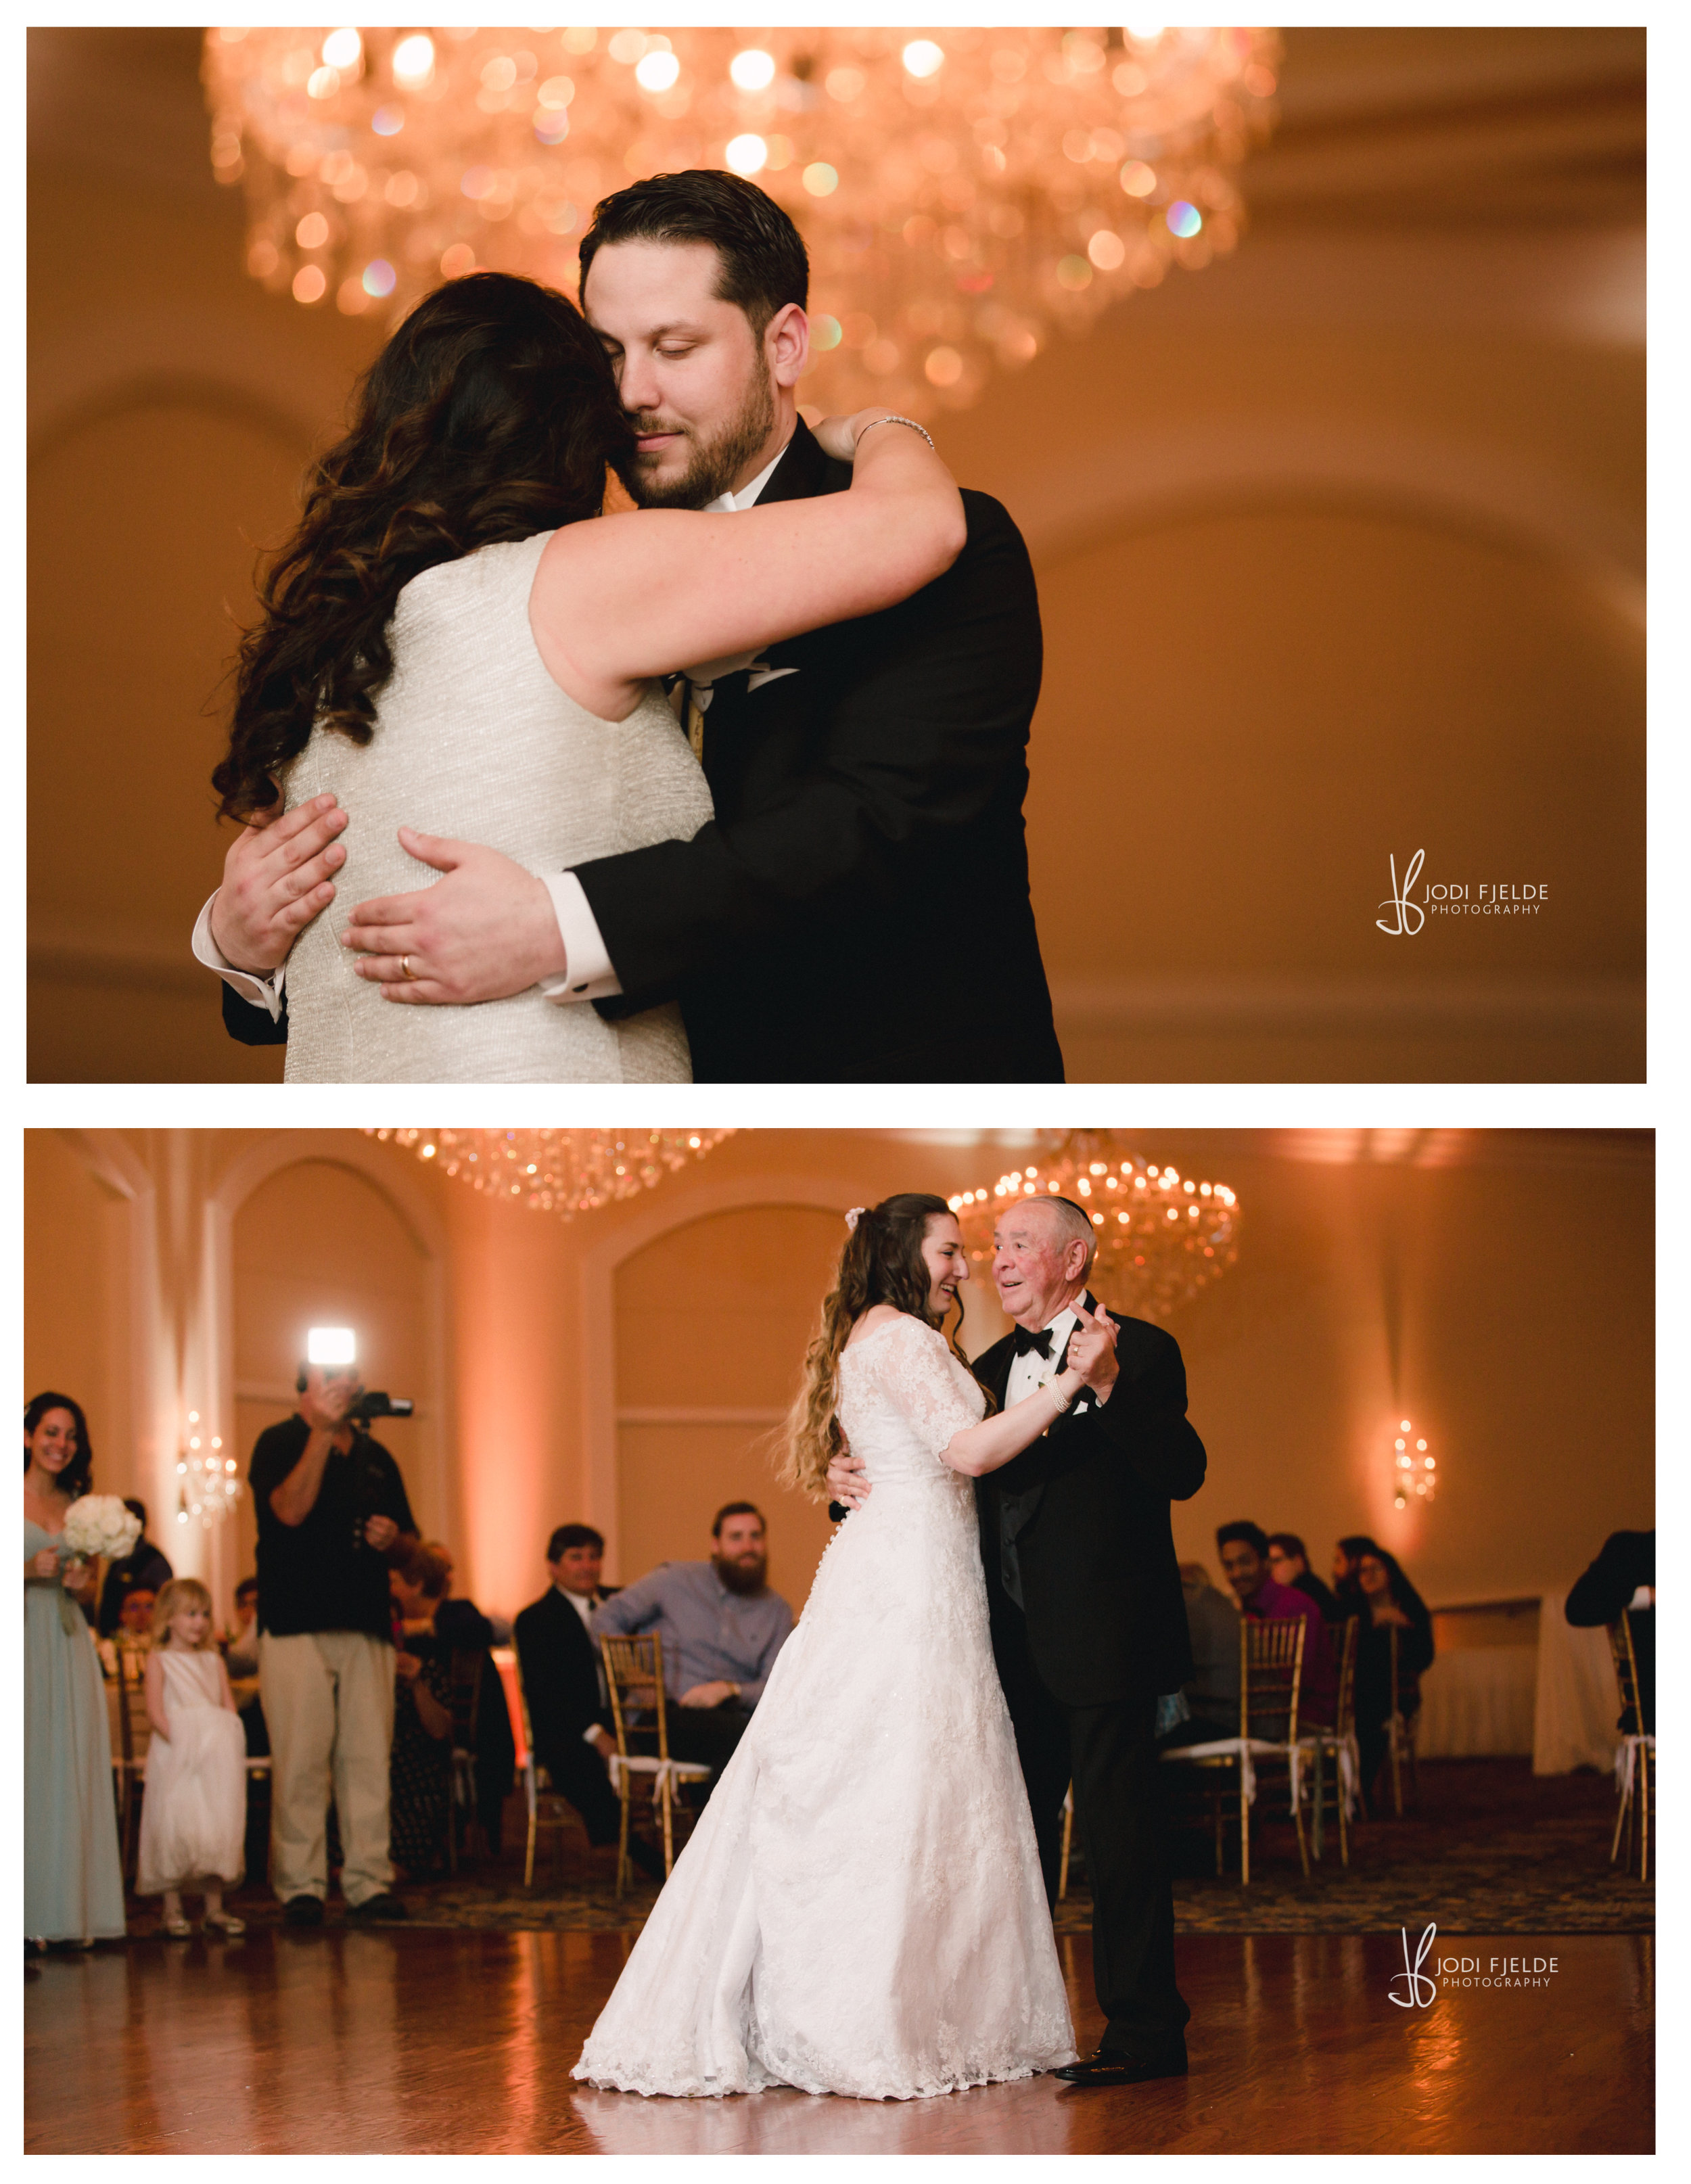 Deer_Creek_Country_Club_Wedding_Jodi_Fjelde_Photography_Andrea_Jason_18.jpg